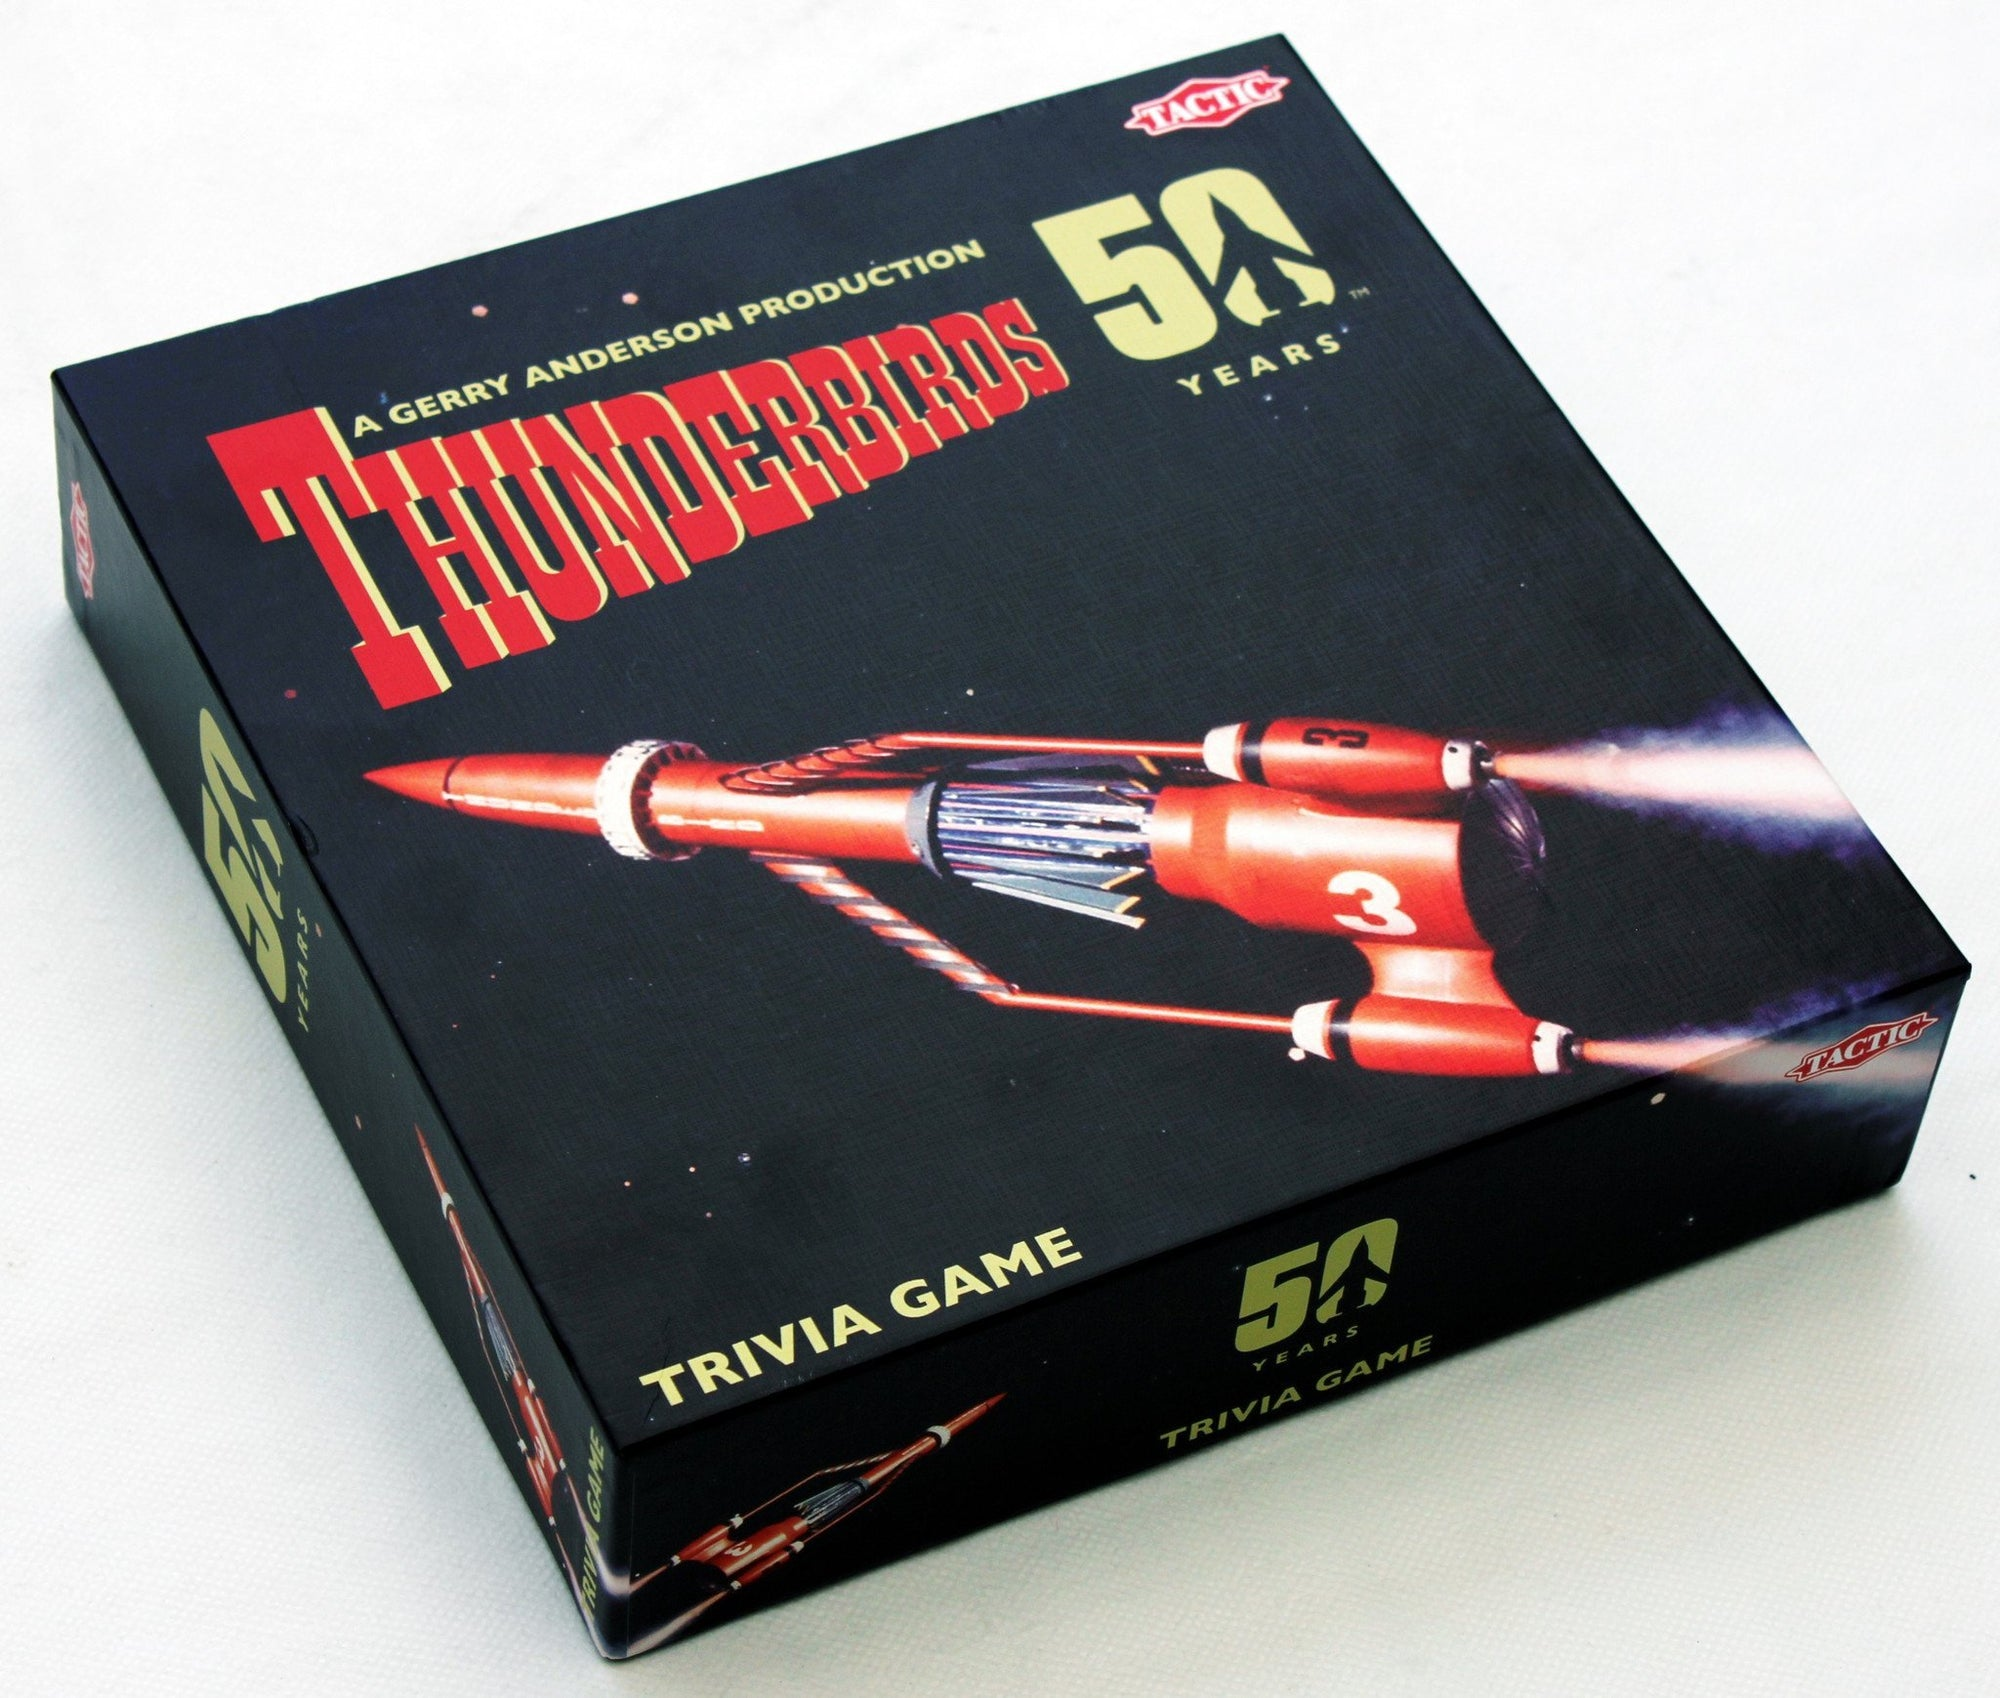 Test yourself with the Thunderbirds Trivia Game! | The Gerry Anderson Store